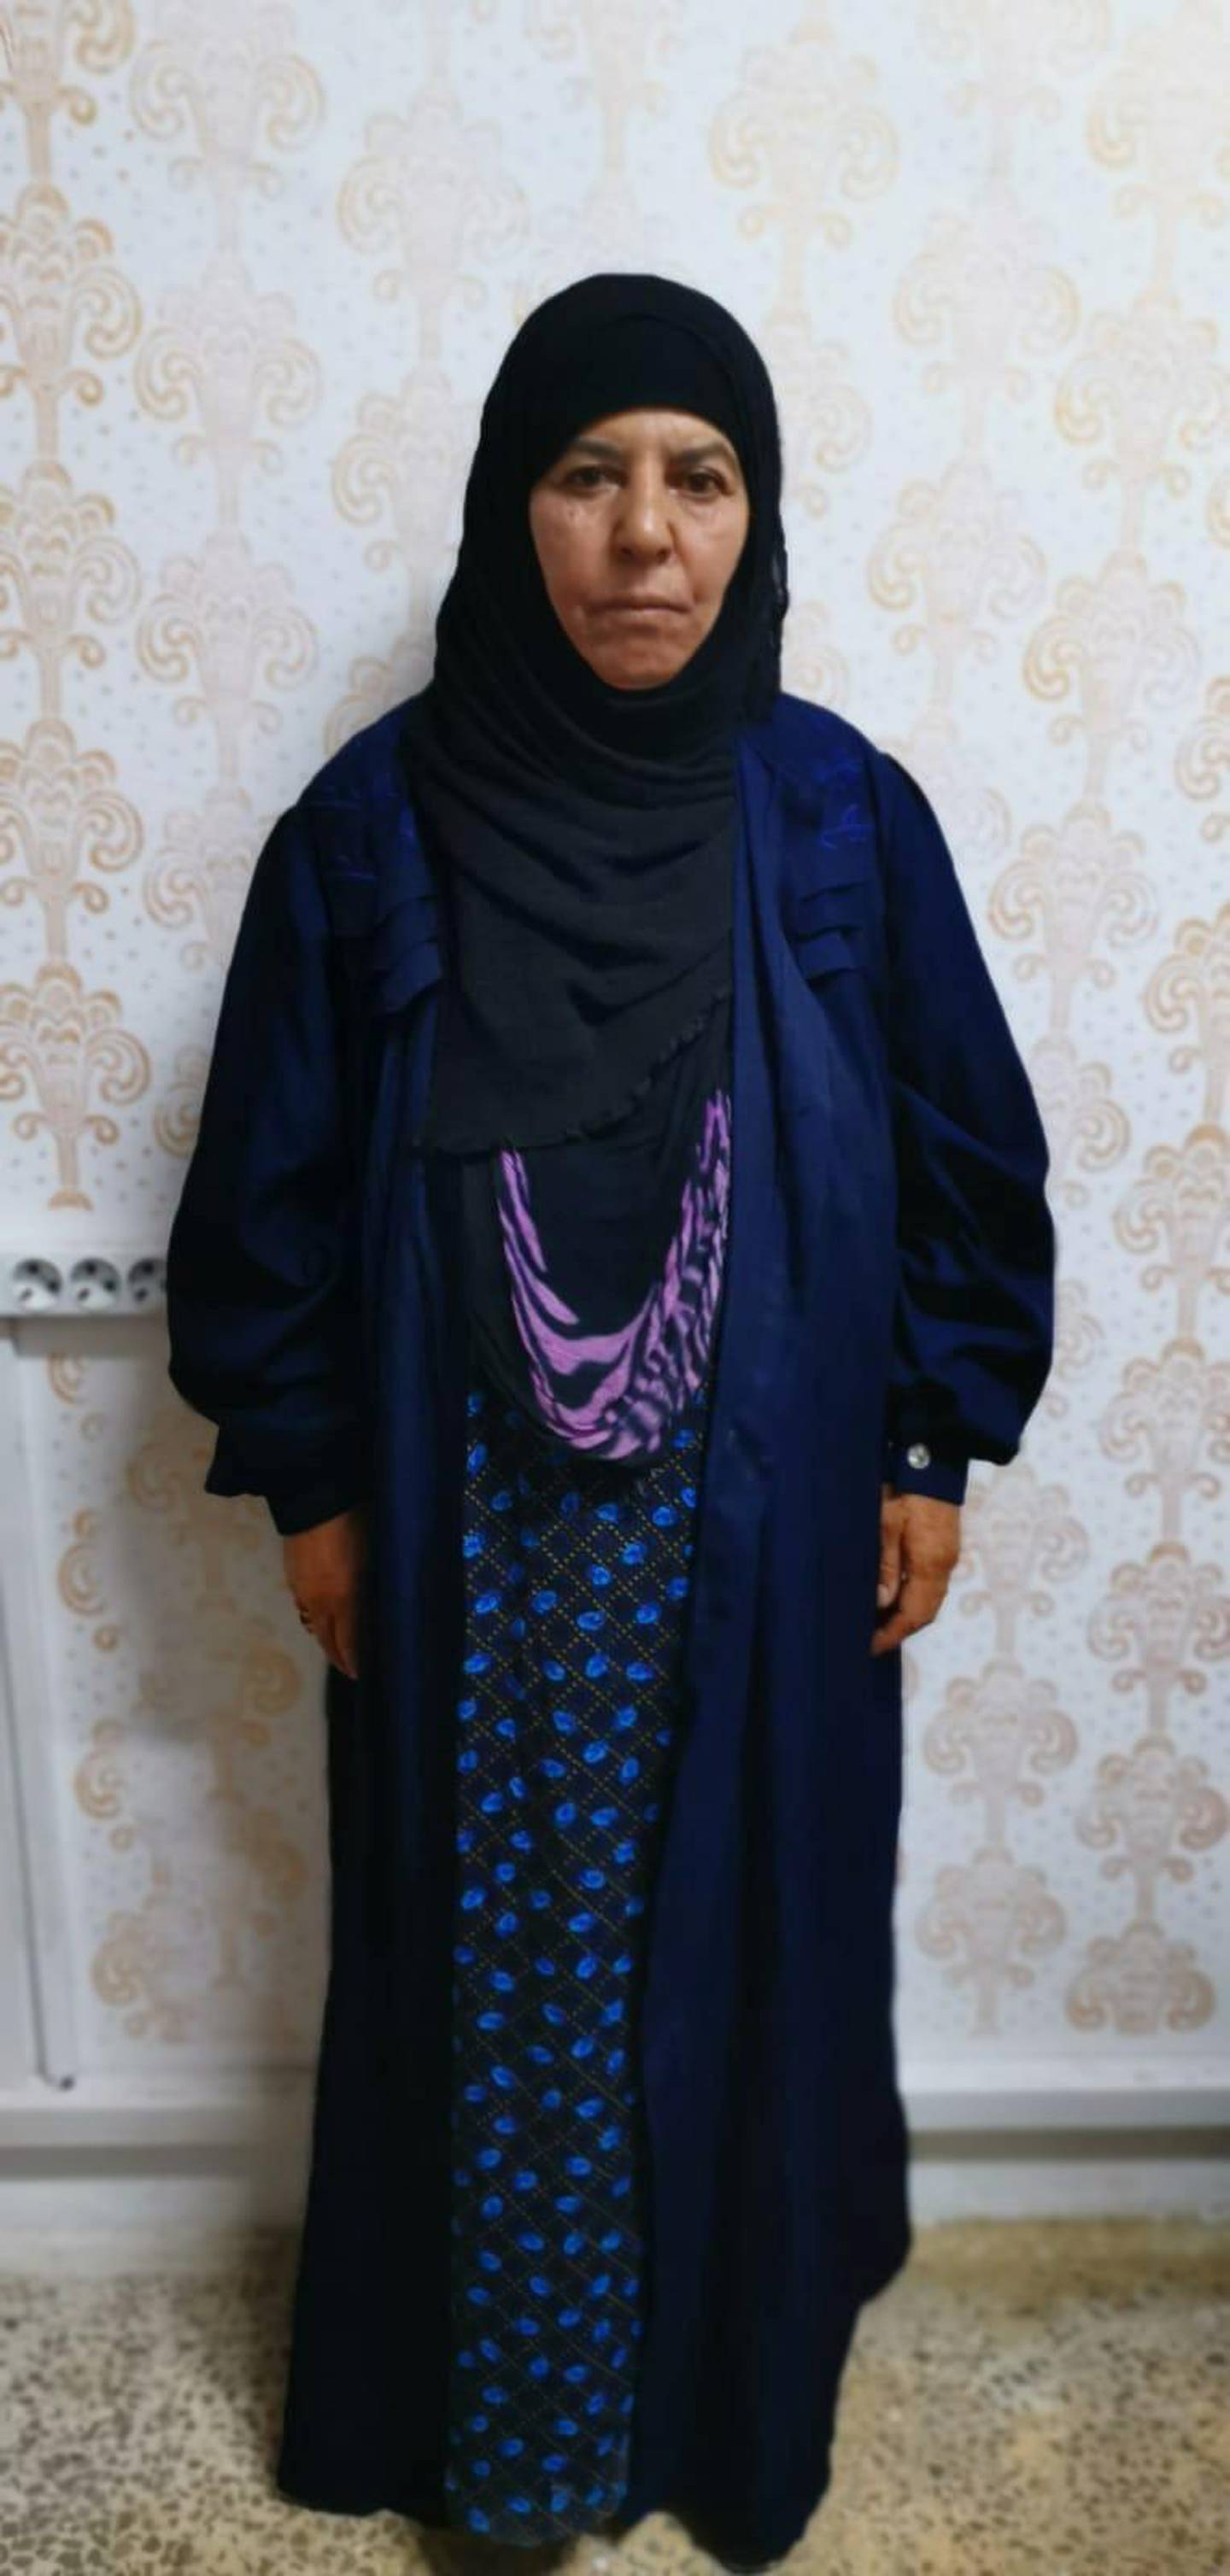 Rasmiya Awad, believed to be the sister of slain Islamic State leader Abu Bakr al-Baghdadi, who was captured on Monday in the northern Syrian town of Azaz by Turkish security officials, is seen in an unknown location in an undated picture provided by Turkish security officials. Turkish Security Officials/Handout via REUTERS ATTENTION EDITORS - THIS IMAGE HAS BEEN SUPPLIED BY A THIRD PARTY.